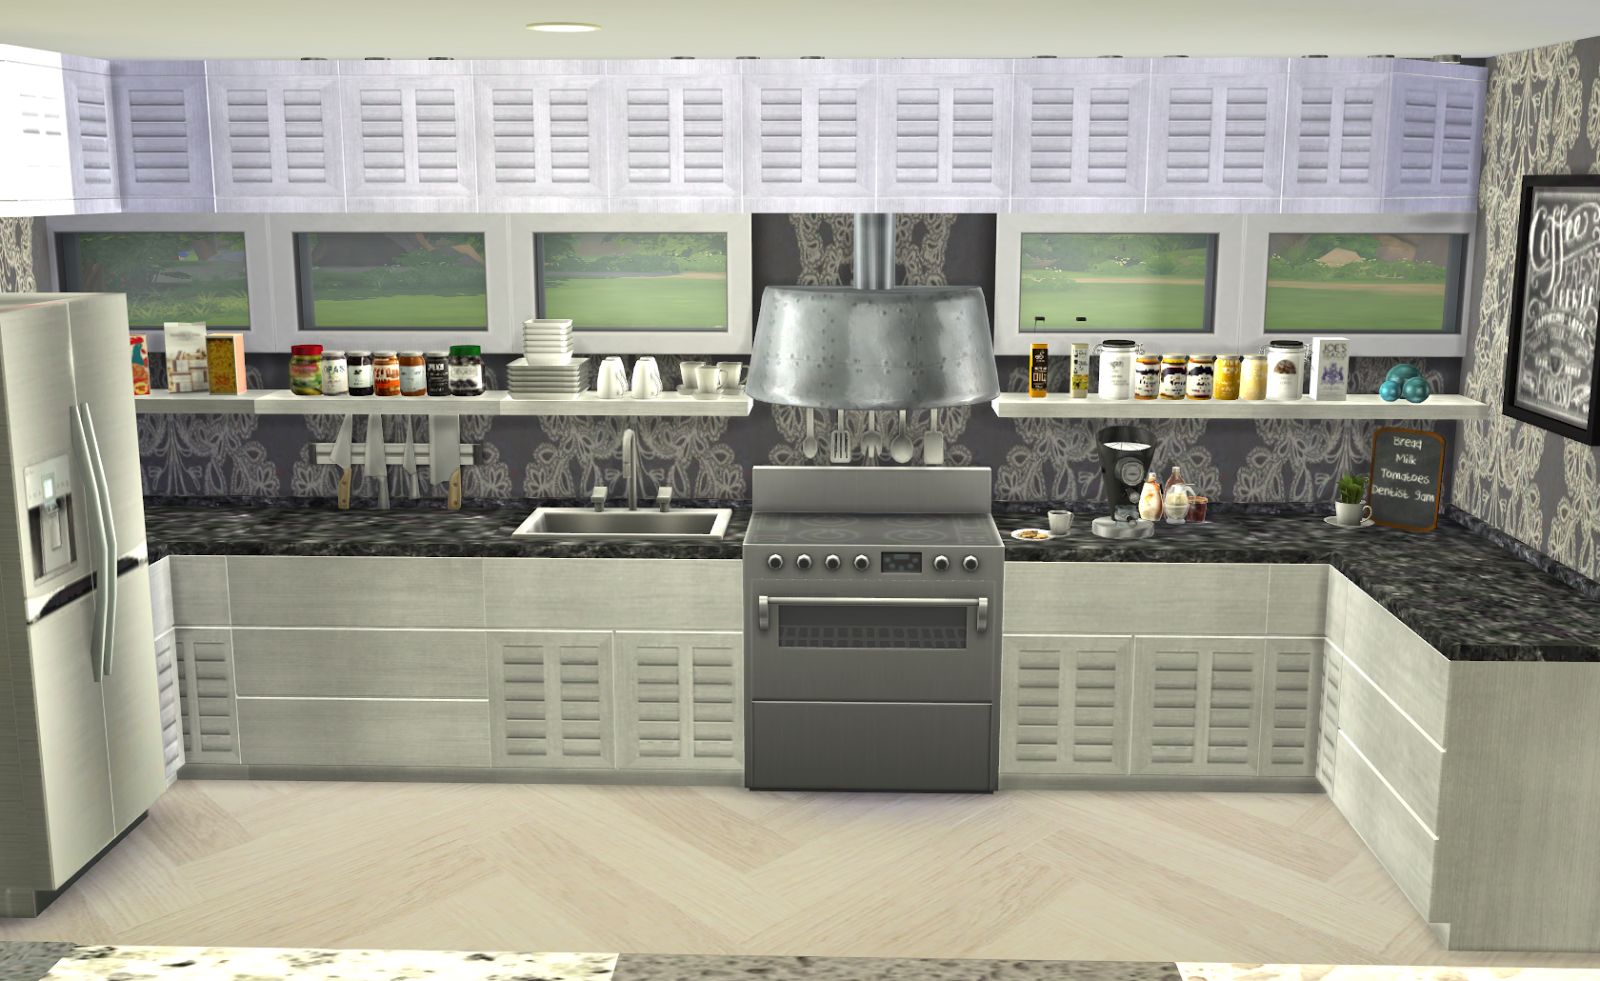 Sims 3 Kitchen My Little The Sims 3 World Future Kitchen Recolors Sims4 Cc